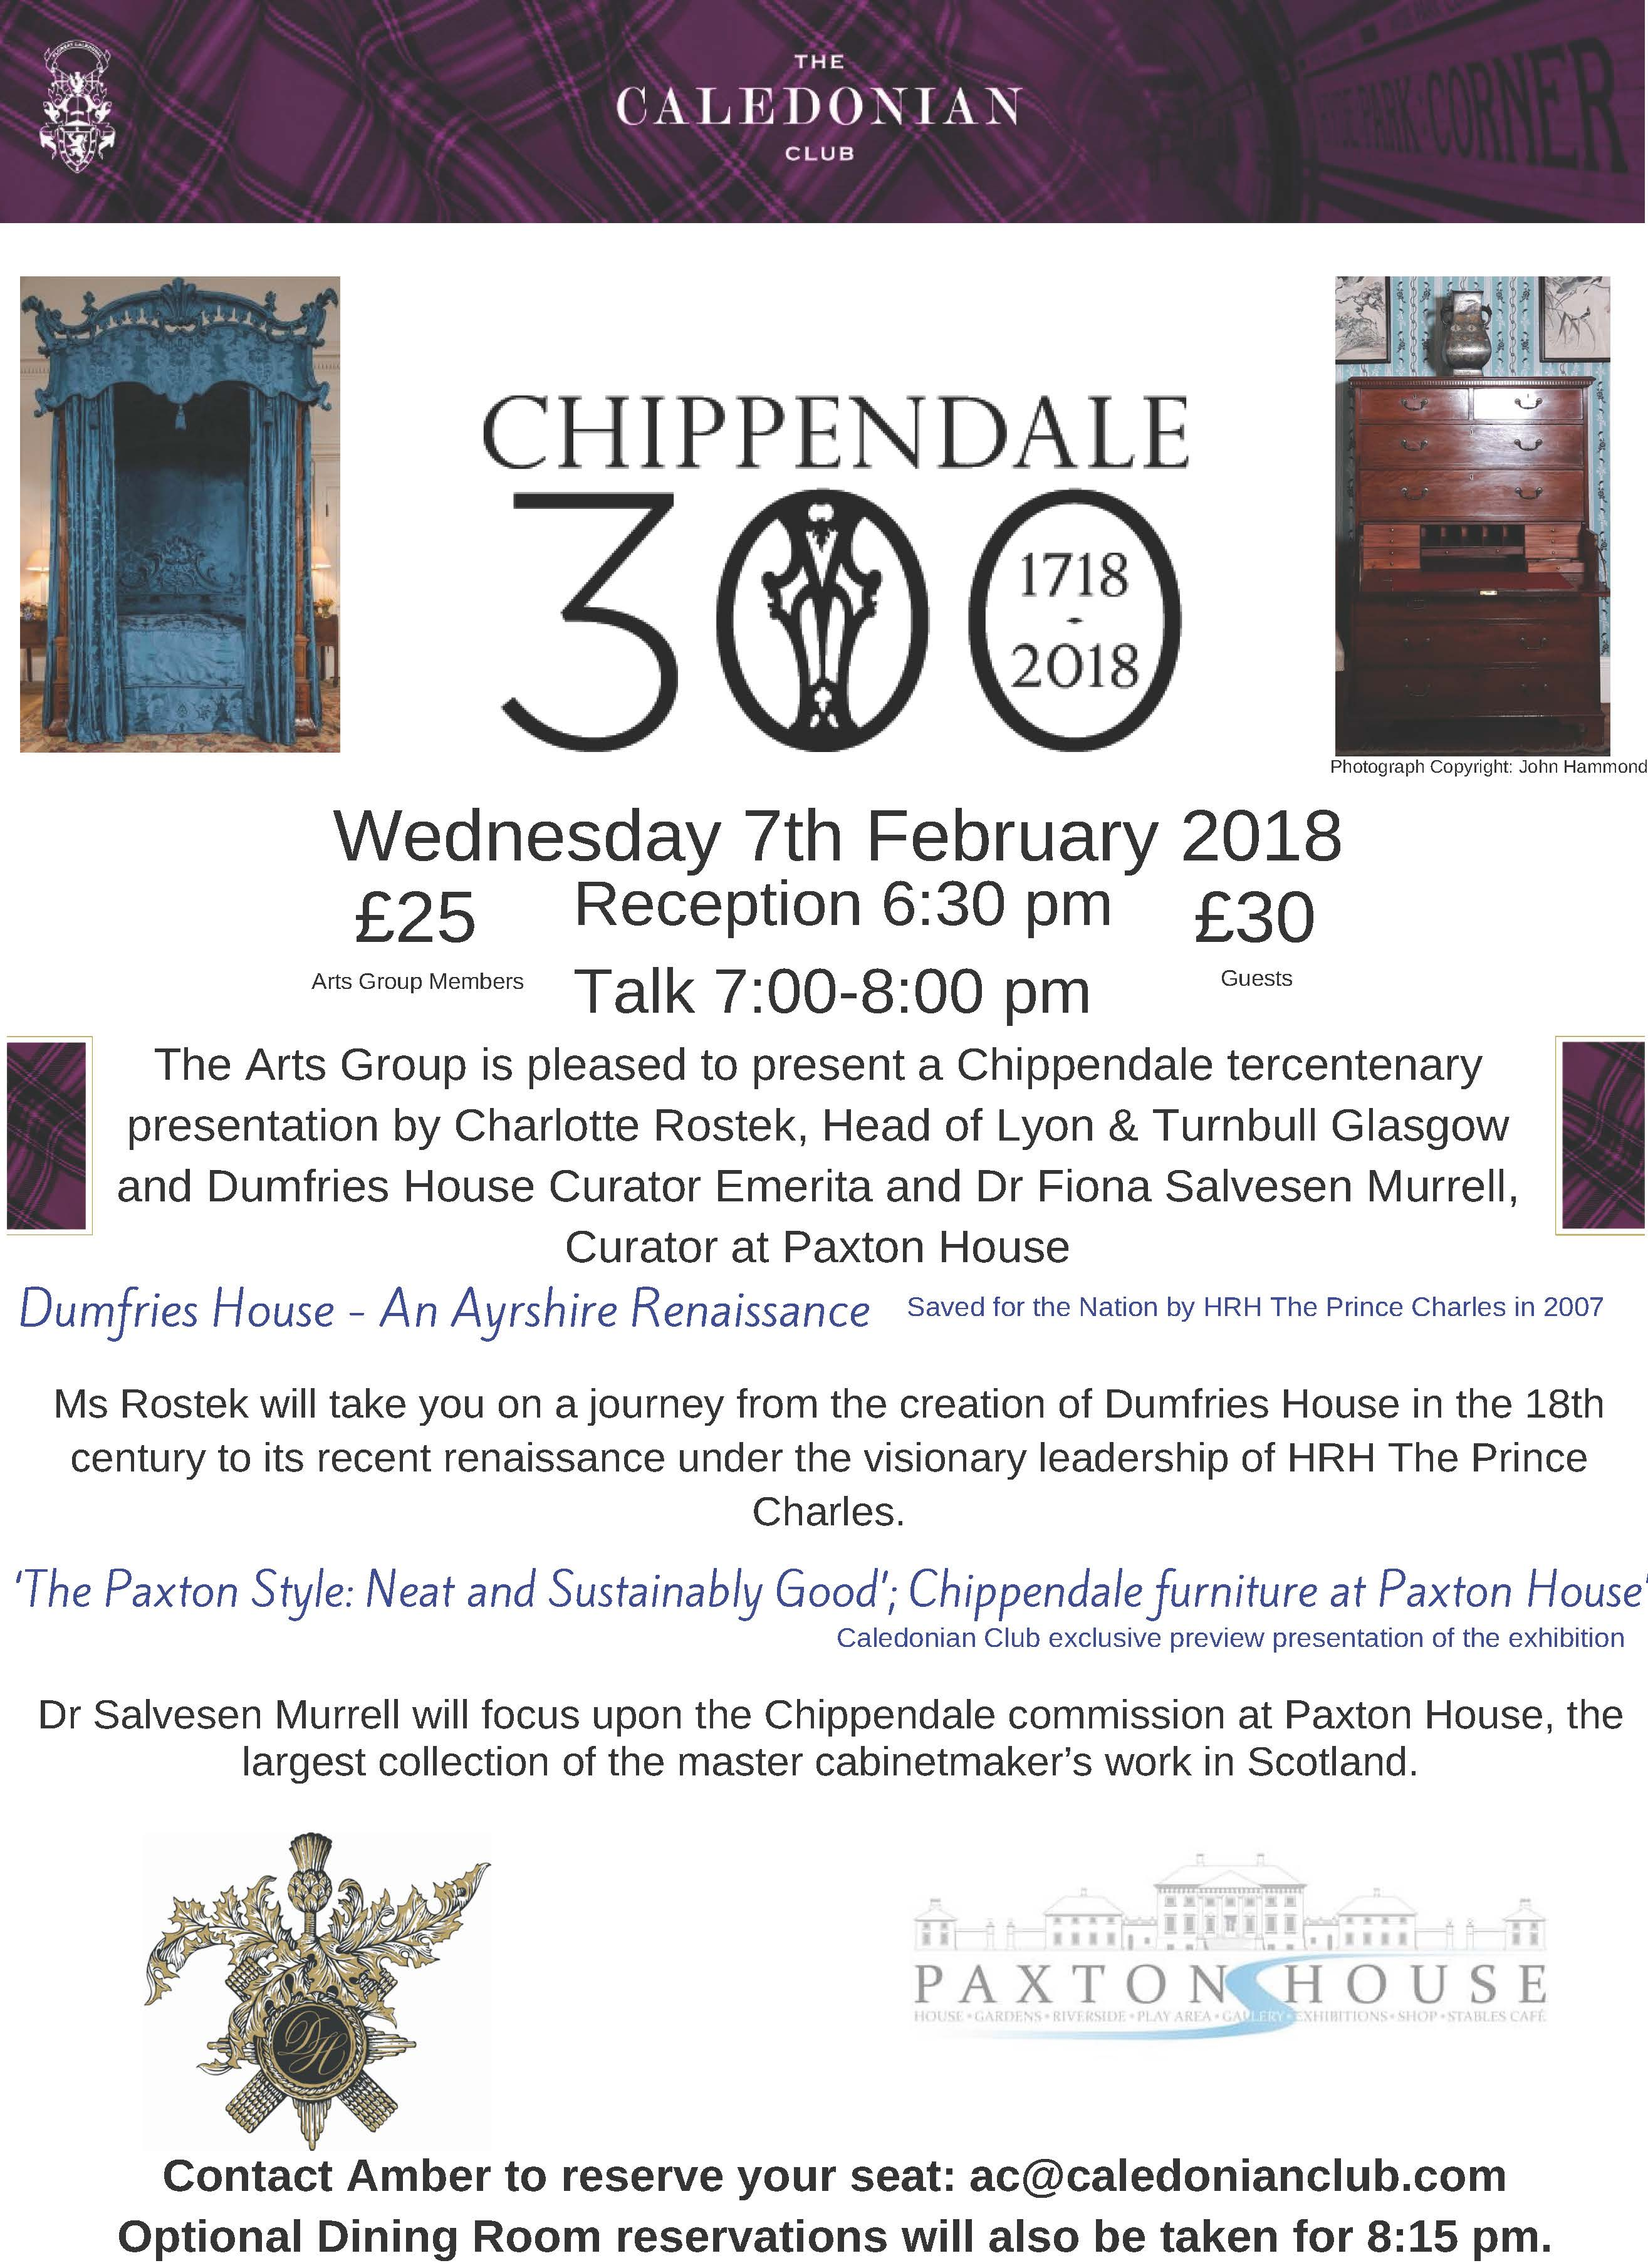 Chippendale tercentenary presentation at The Caledonian Club